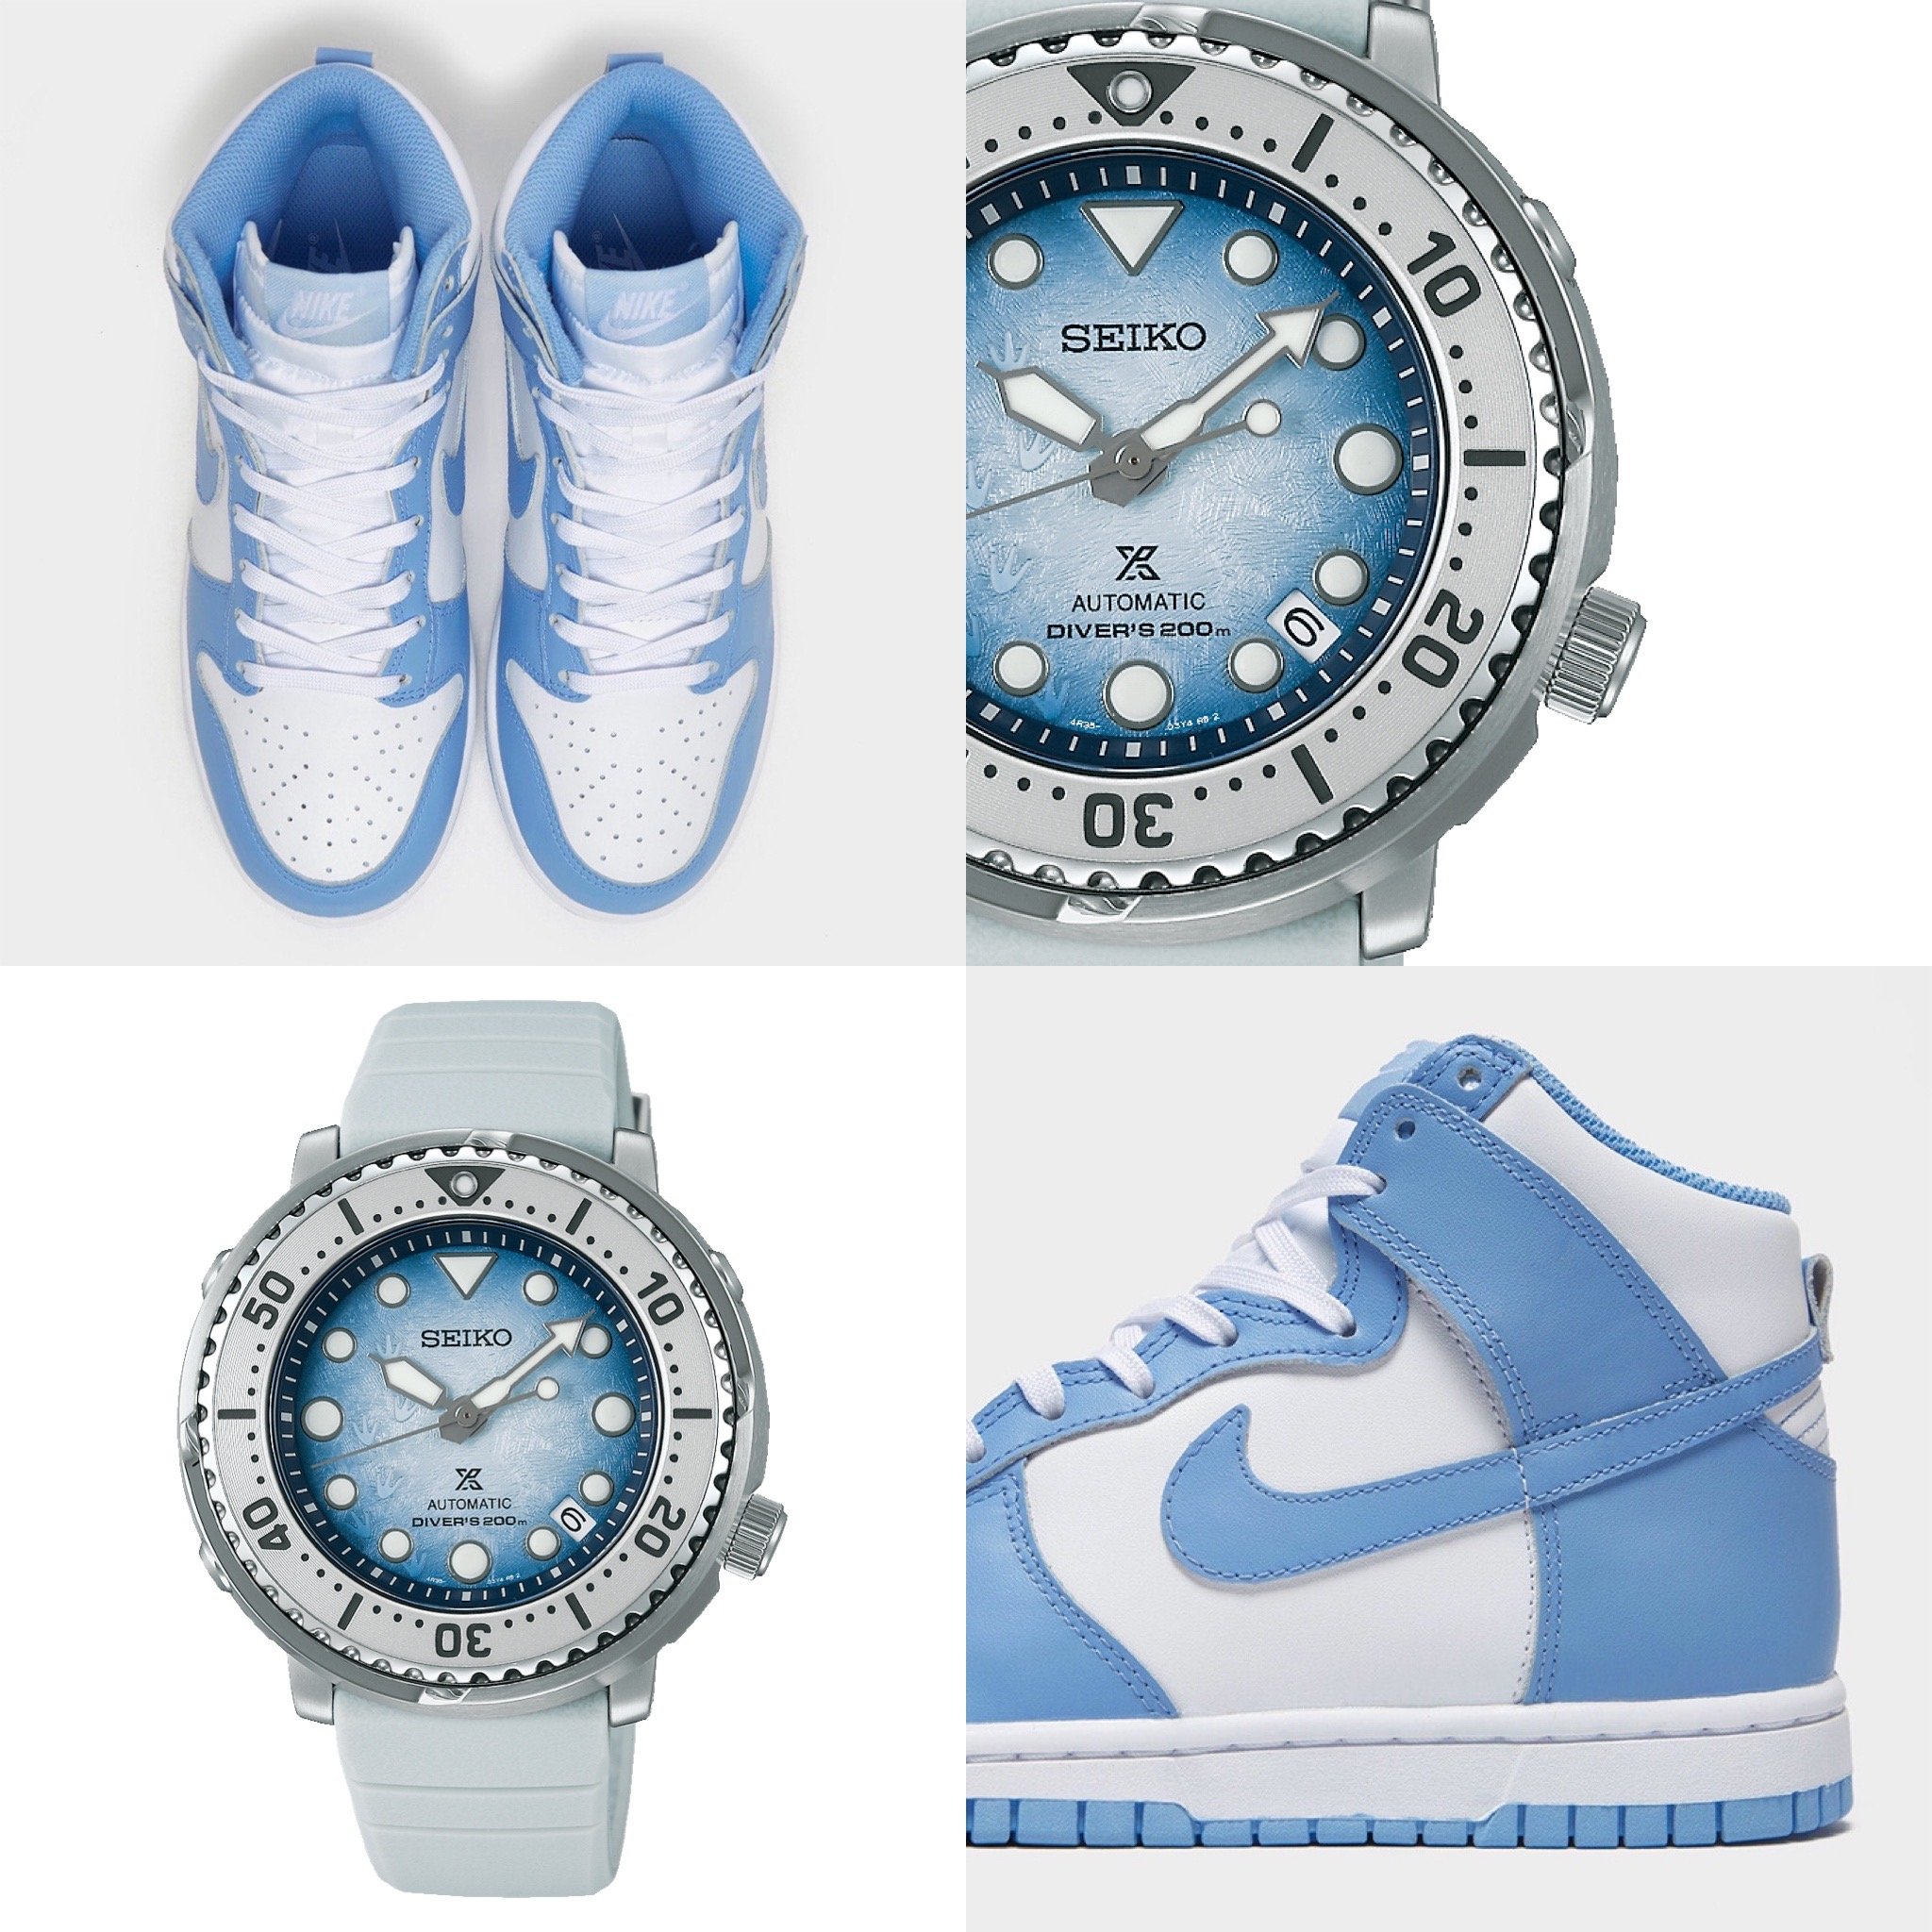 """#Kixntix: The Seiko Prospex Save The Ocean """"Antarctica"""" and the icy cool comfort of Nike Dunk Highs"""